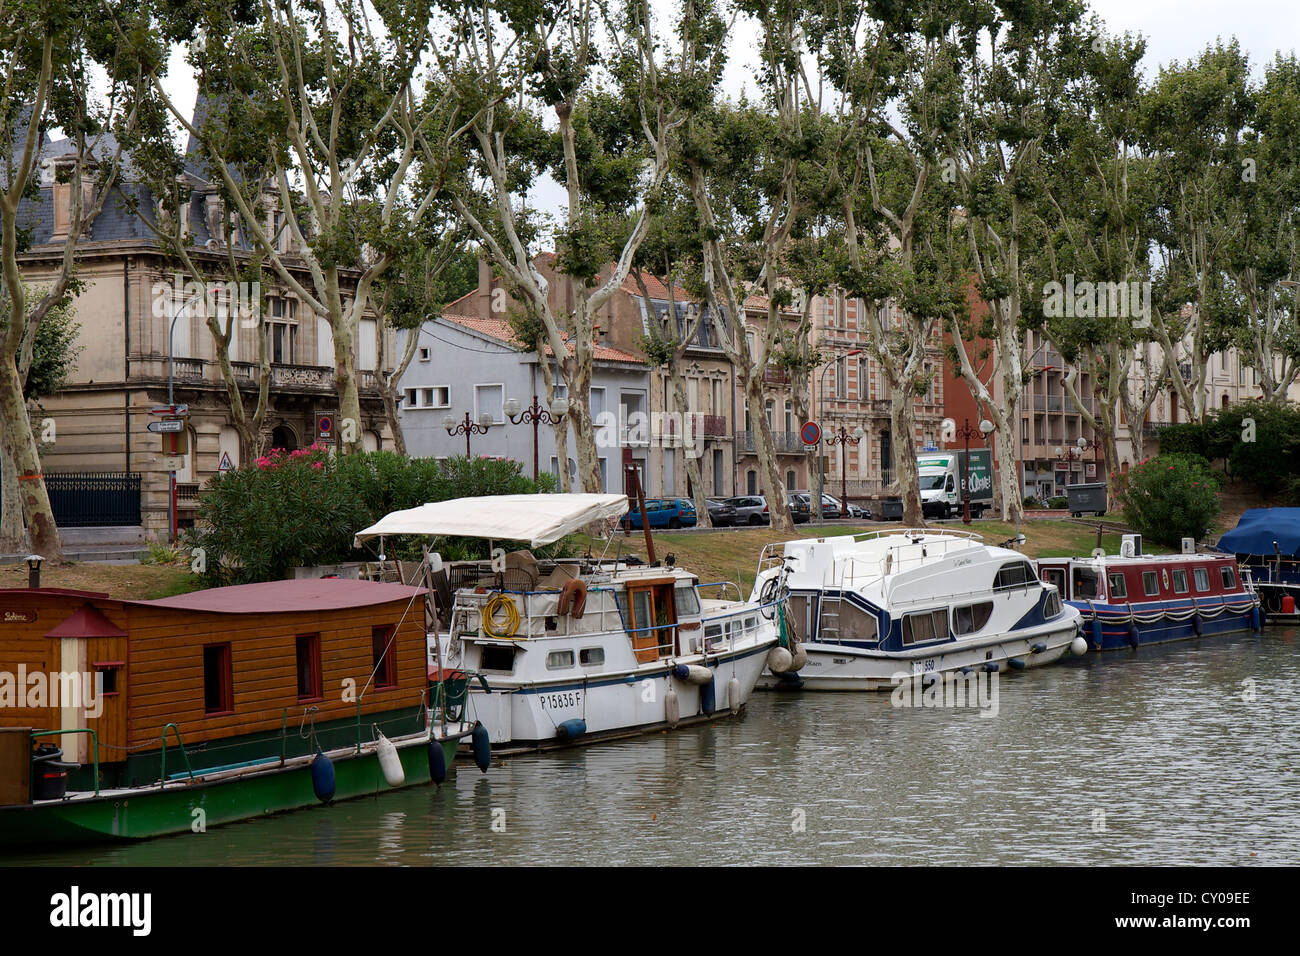 Canal side house boats and barges in Narbonne on the Canal de la Robine in Southern France.  The canal is lined Stock Photo